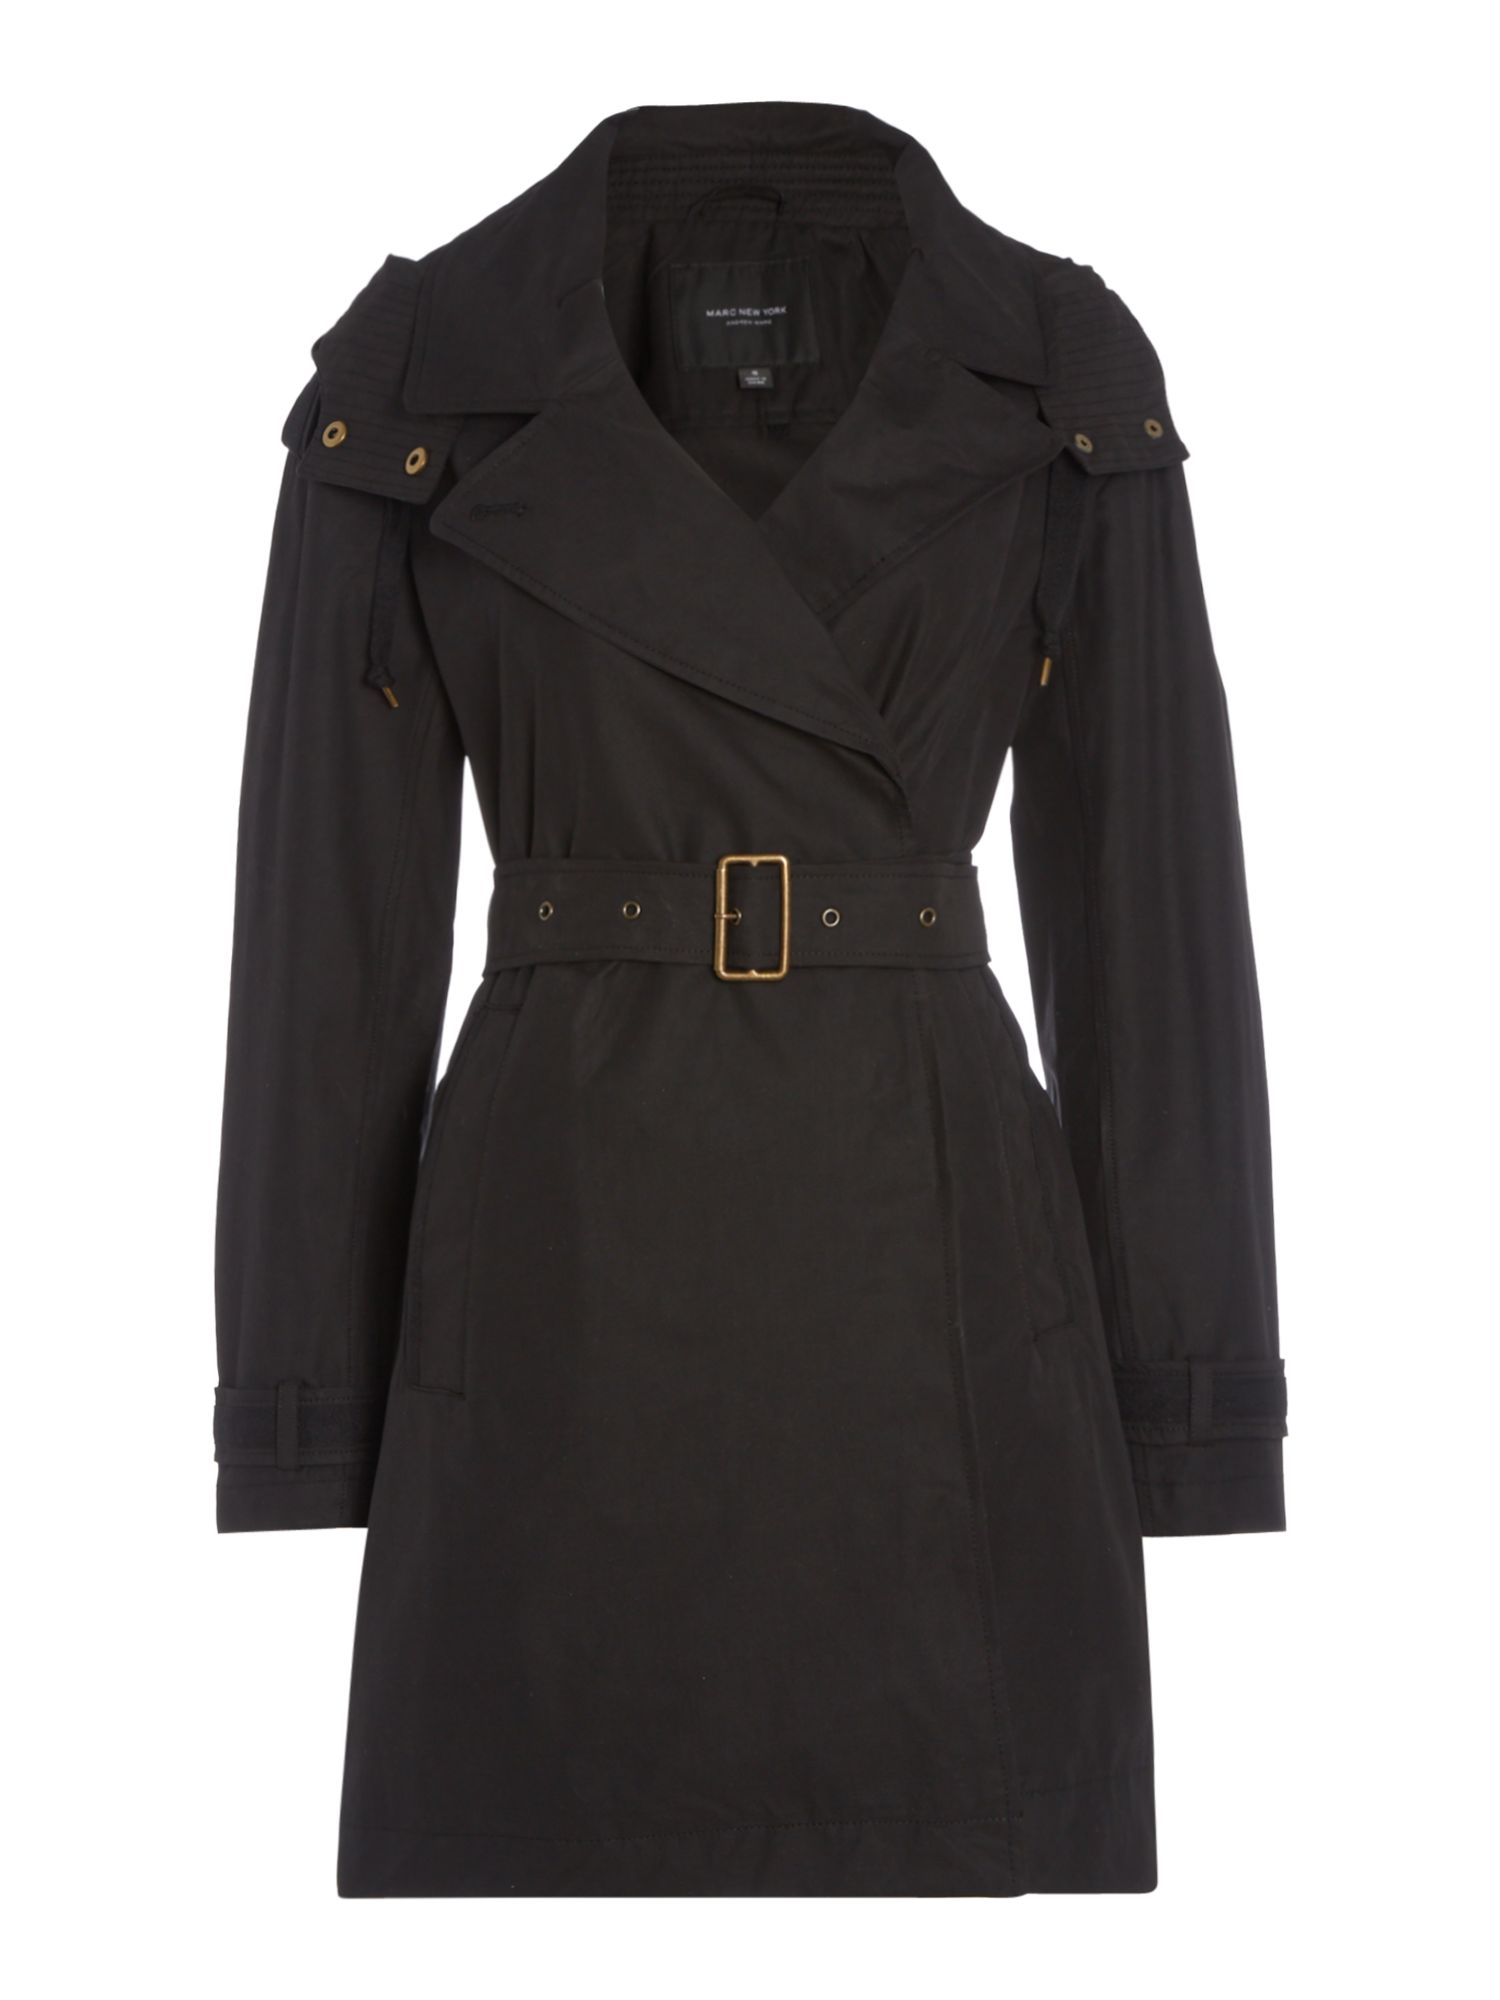 Andrew Marc Brooke Trench Coat With Hood, Black